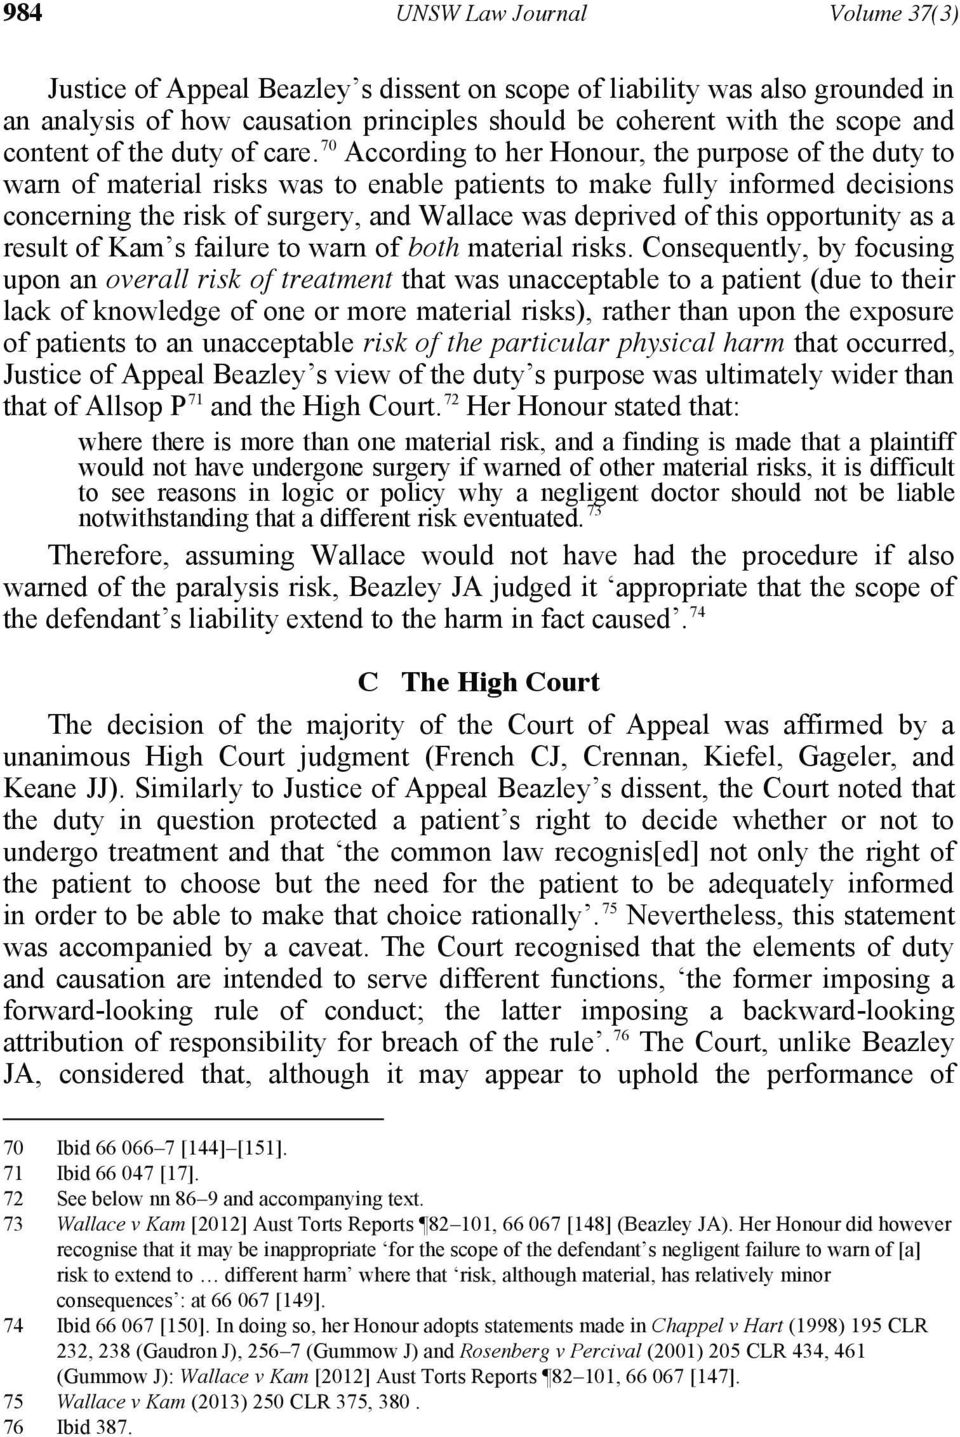 P923F to her Honour, the purpose of the duty to warn of material risks was to enable patients to make fully informed decisions concerning the risk of surgery, and Wallace was deprived of this